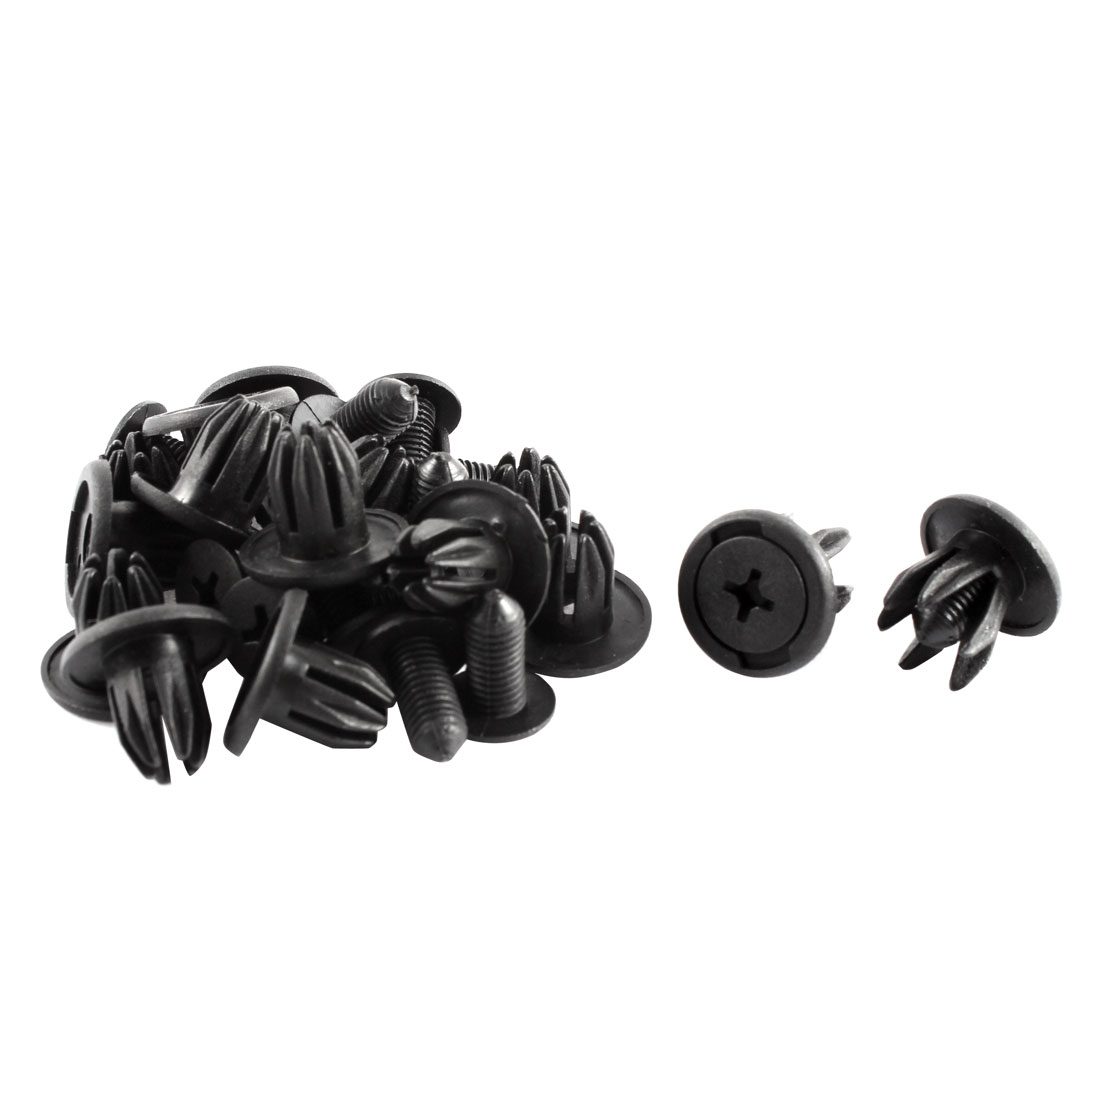 15 Pcs Black Plastic Rivet Car Door Trim Panel Retainer Clip 10mm Hole for Chery